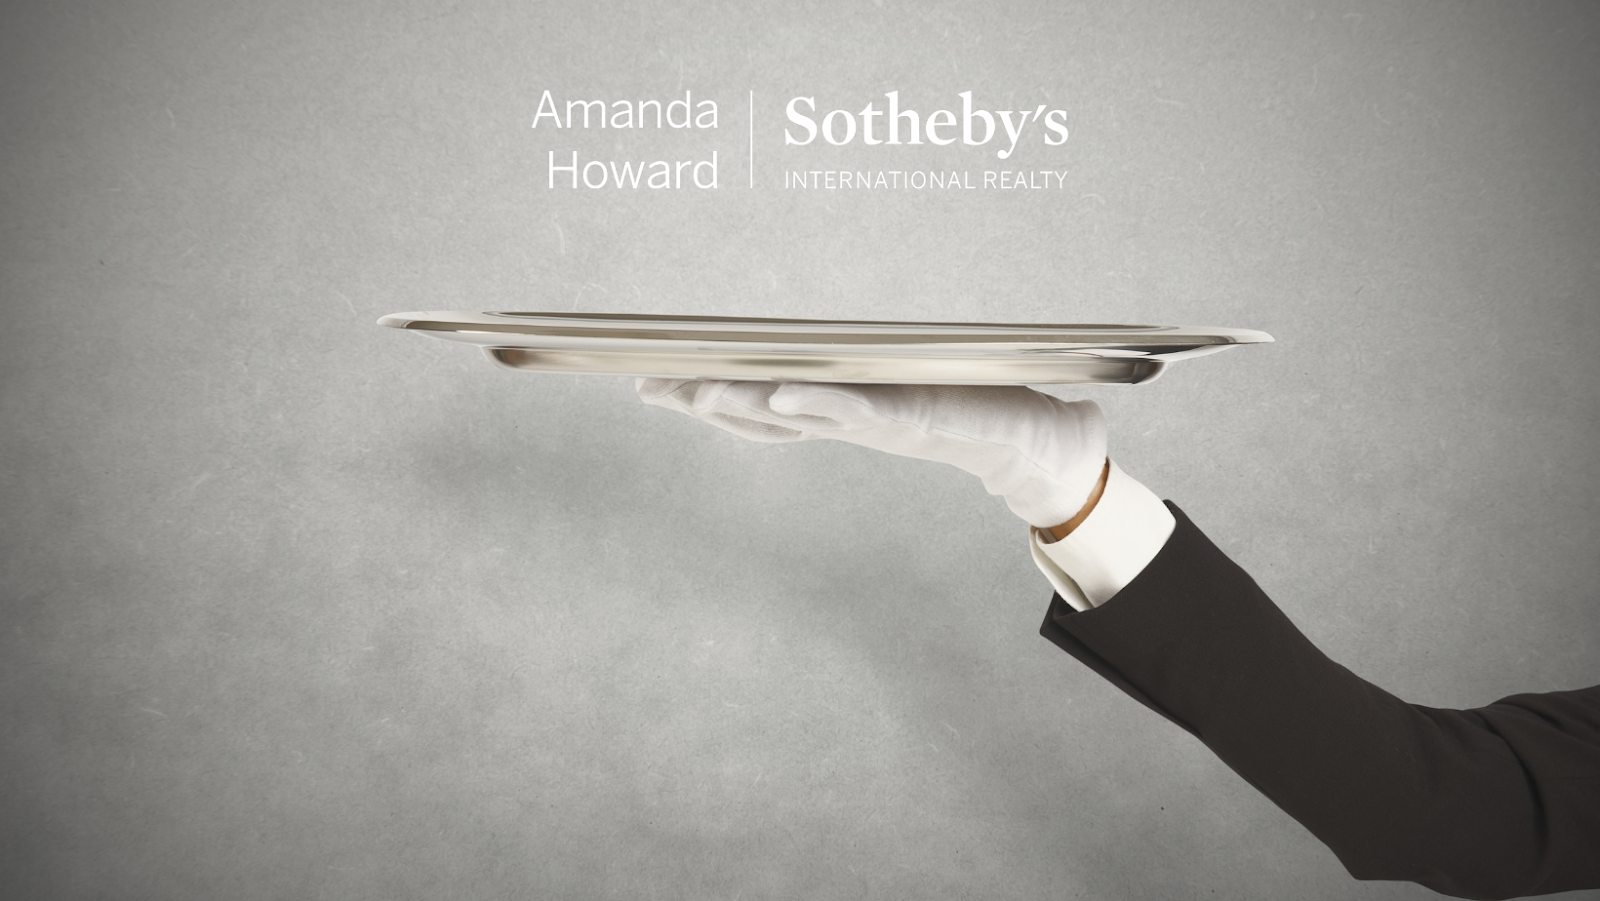 White Glove holding a tray with the Amanda Howard Sotheby's International logo on gray background